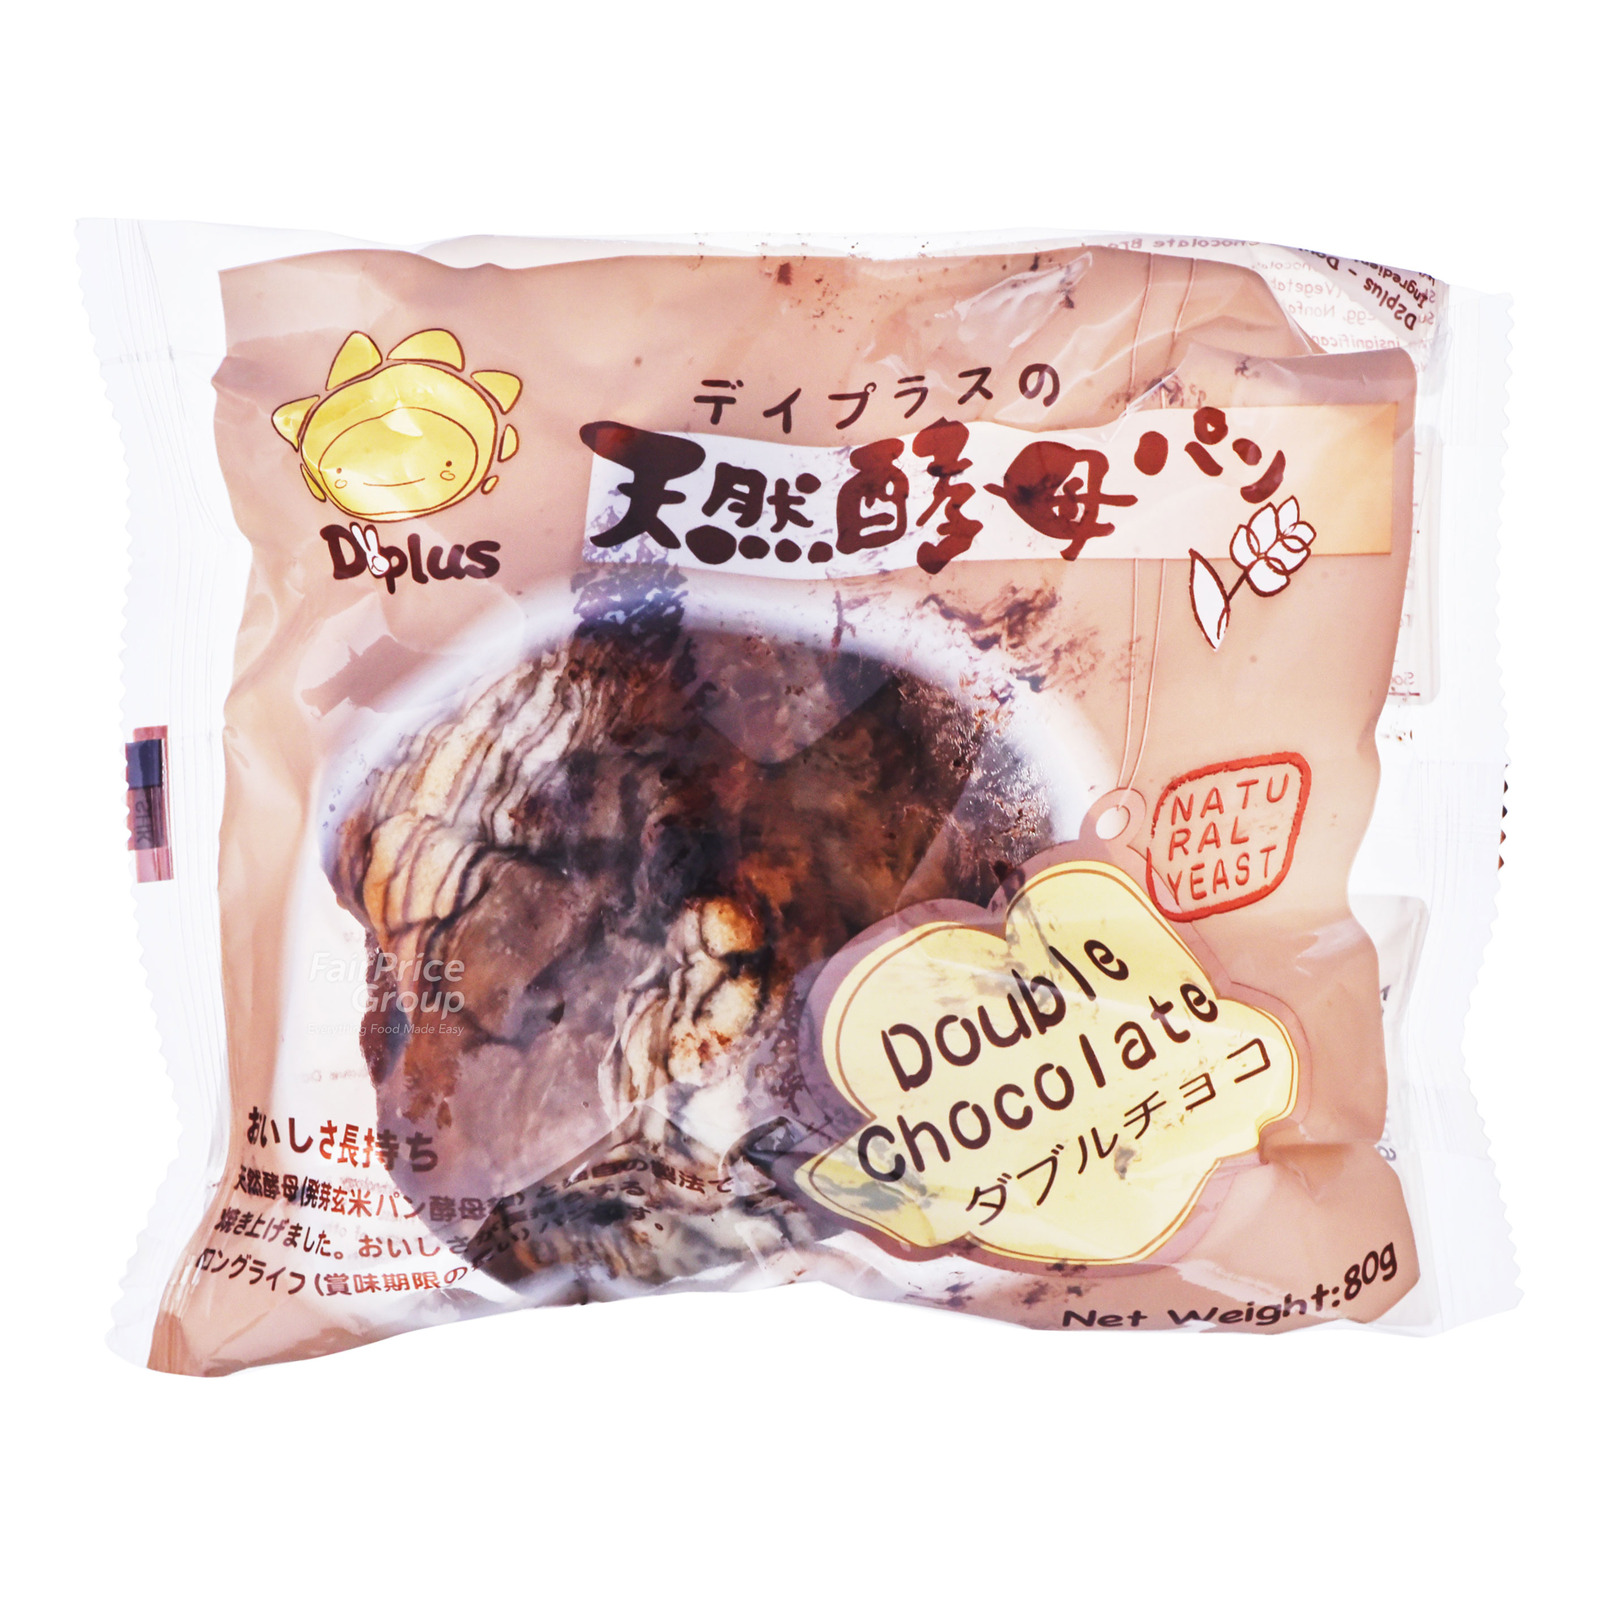 Dayplus Natural Yeast Bread - Double Chocolate